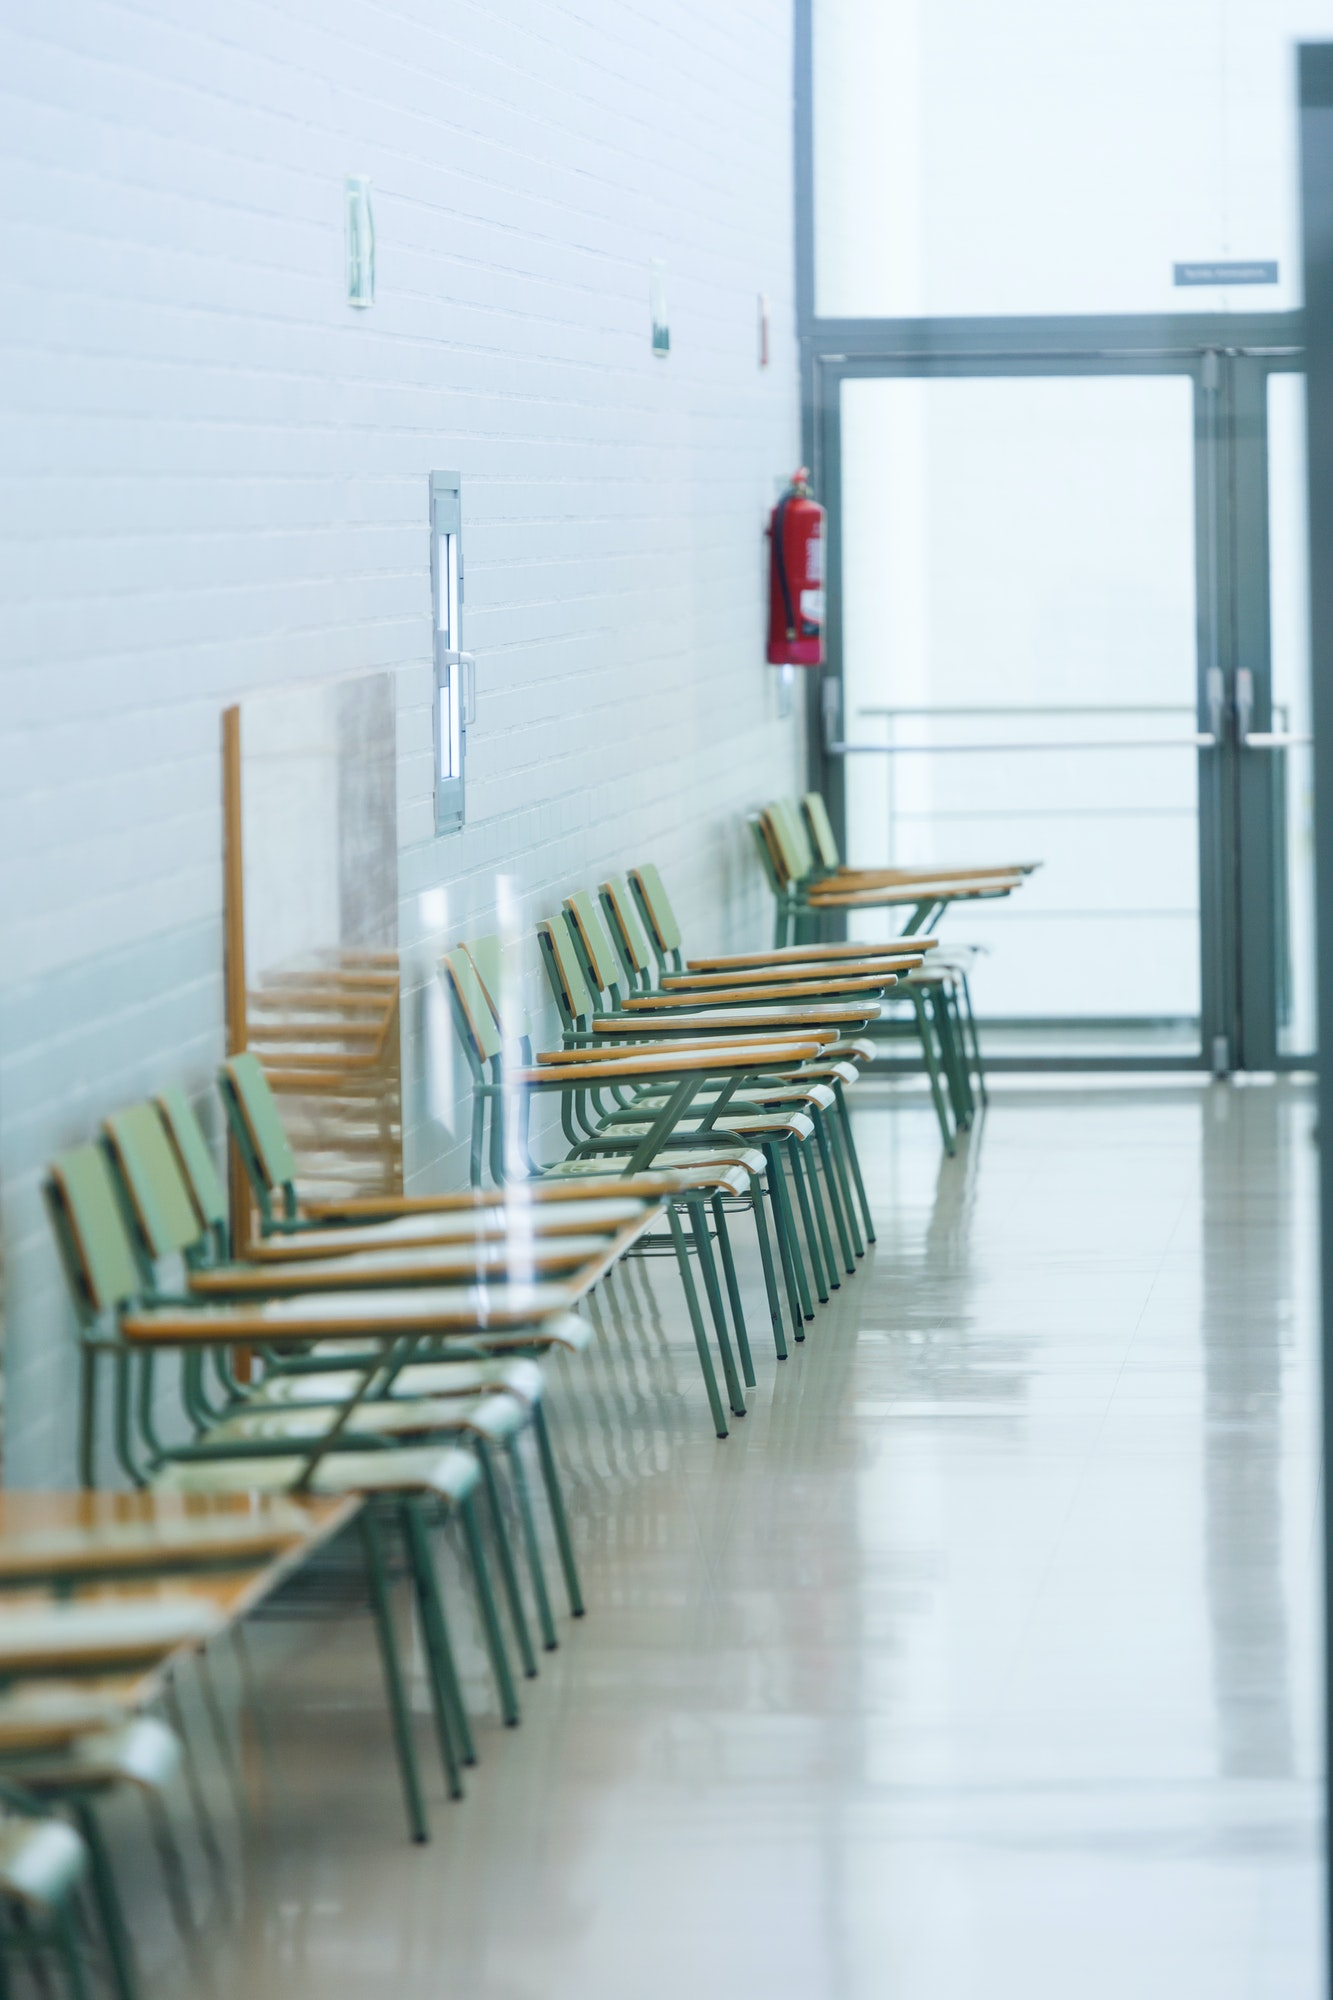 School chairs in the university building.